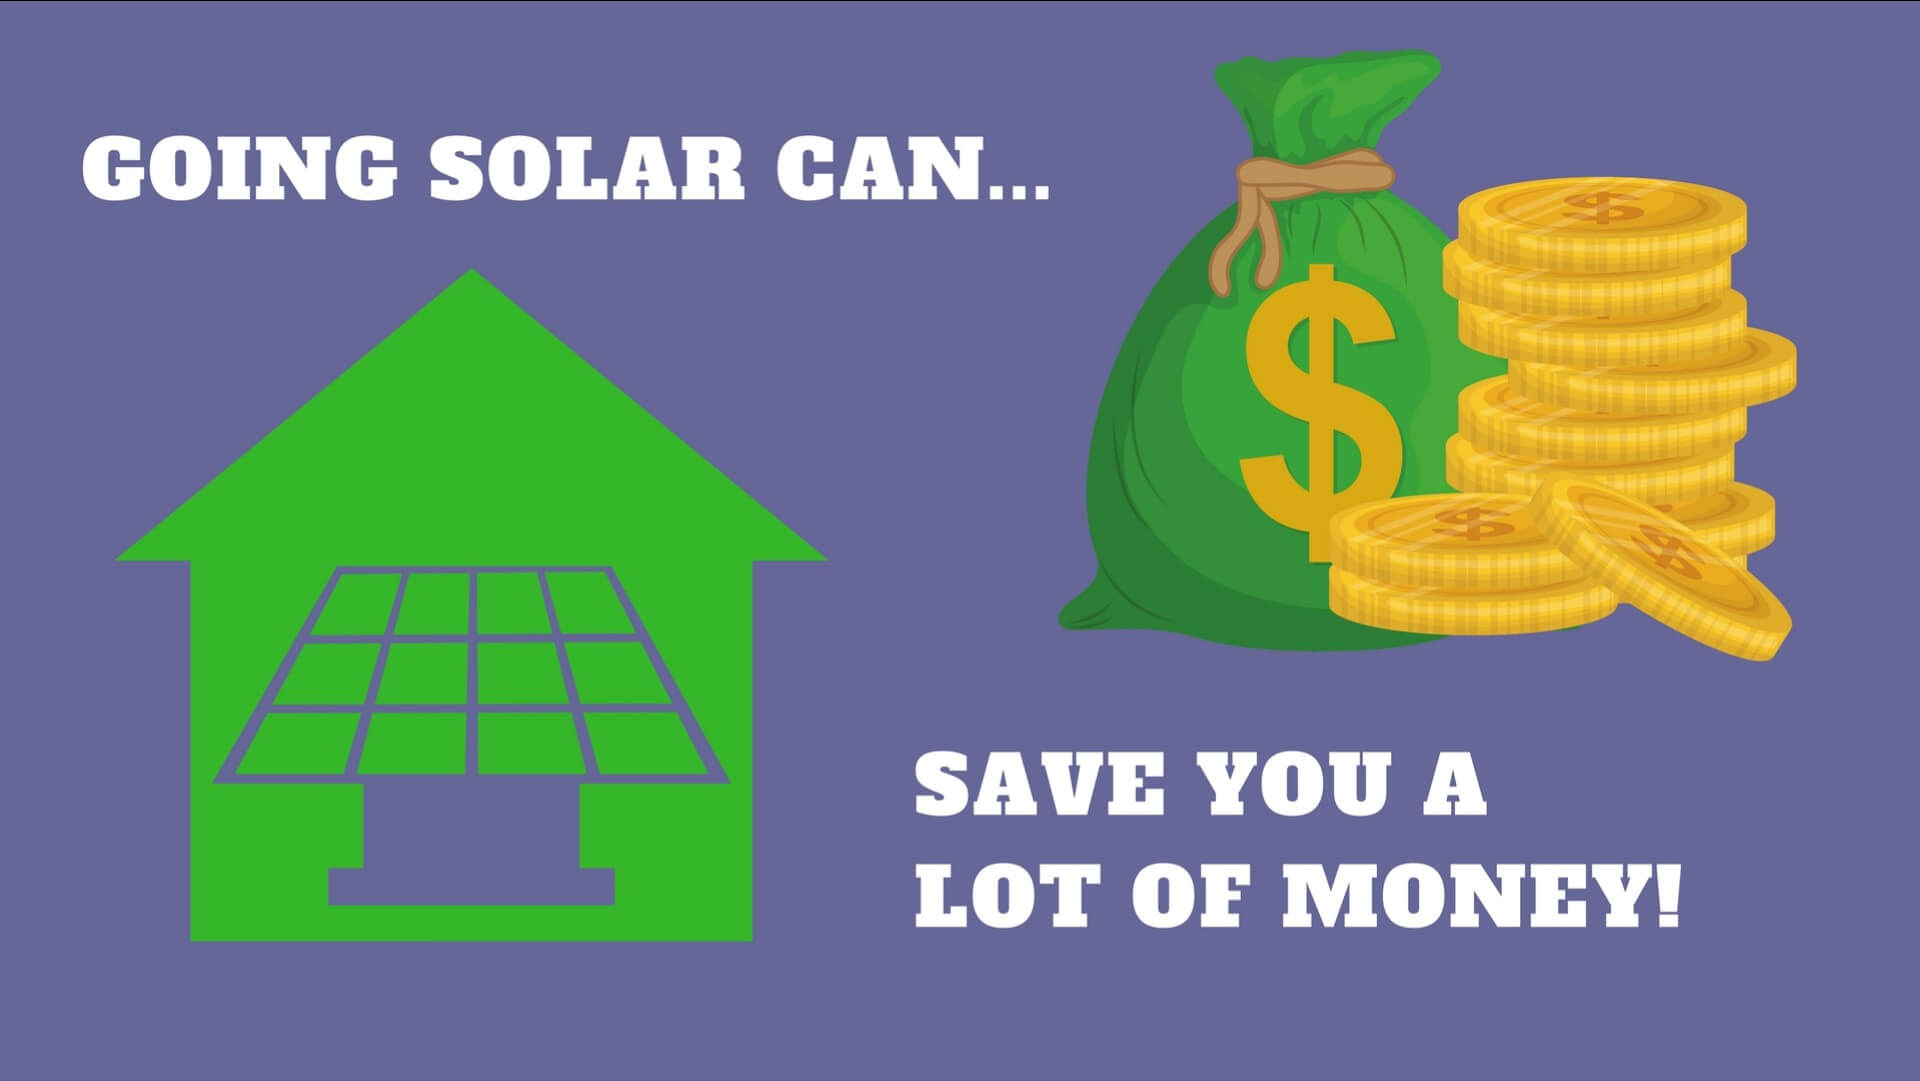 Installing solar electric system on your home or business will reduce your overall carbon footprint